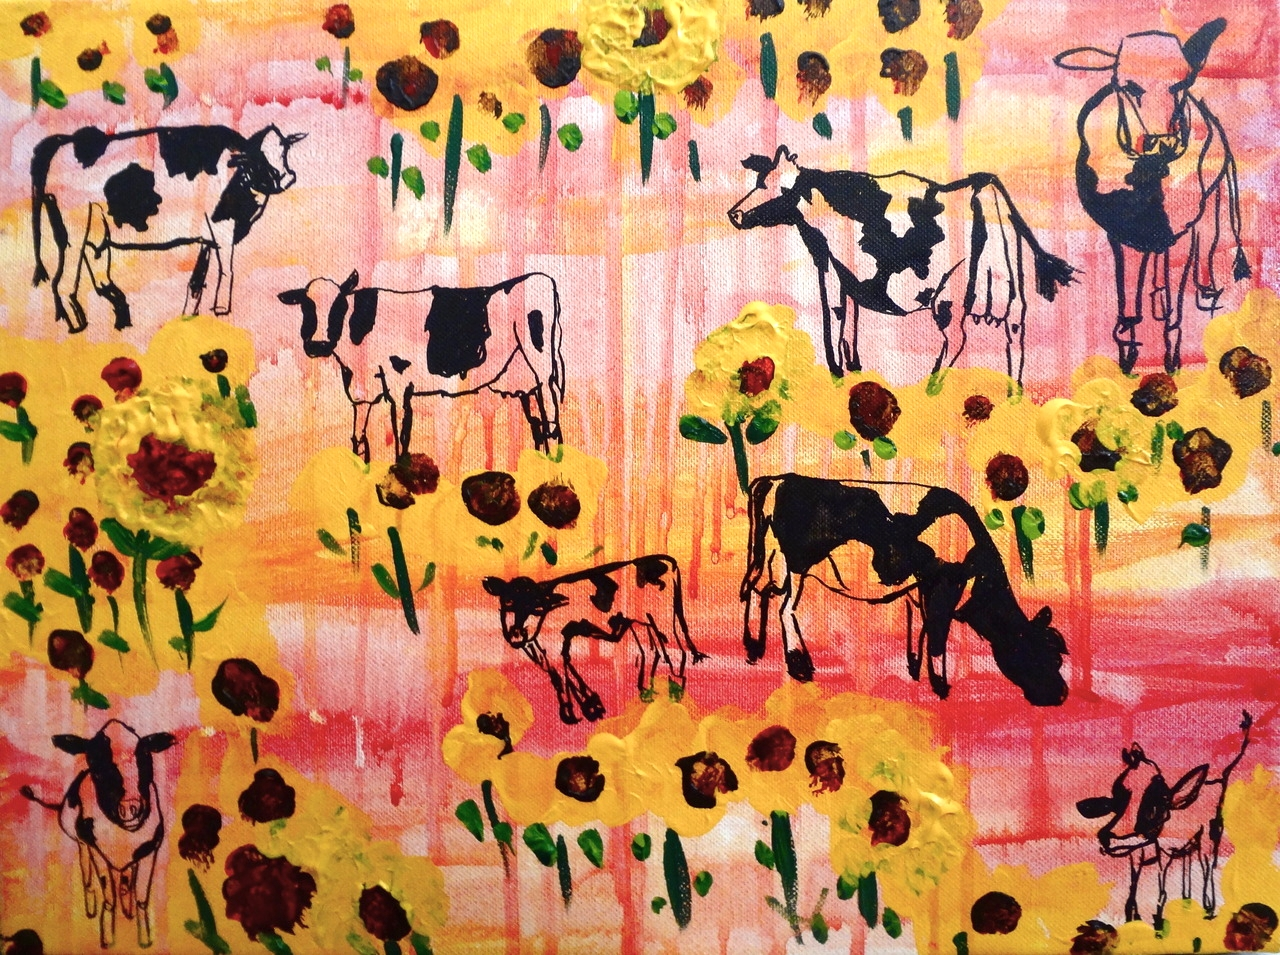 "Cows and Sunflowers in Israel/ Mixed Media on Canvas/ 12x20""/July 2012 (SOLD)"